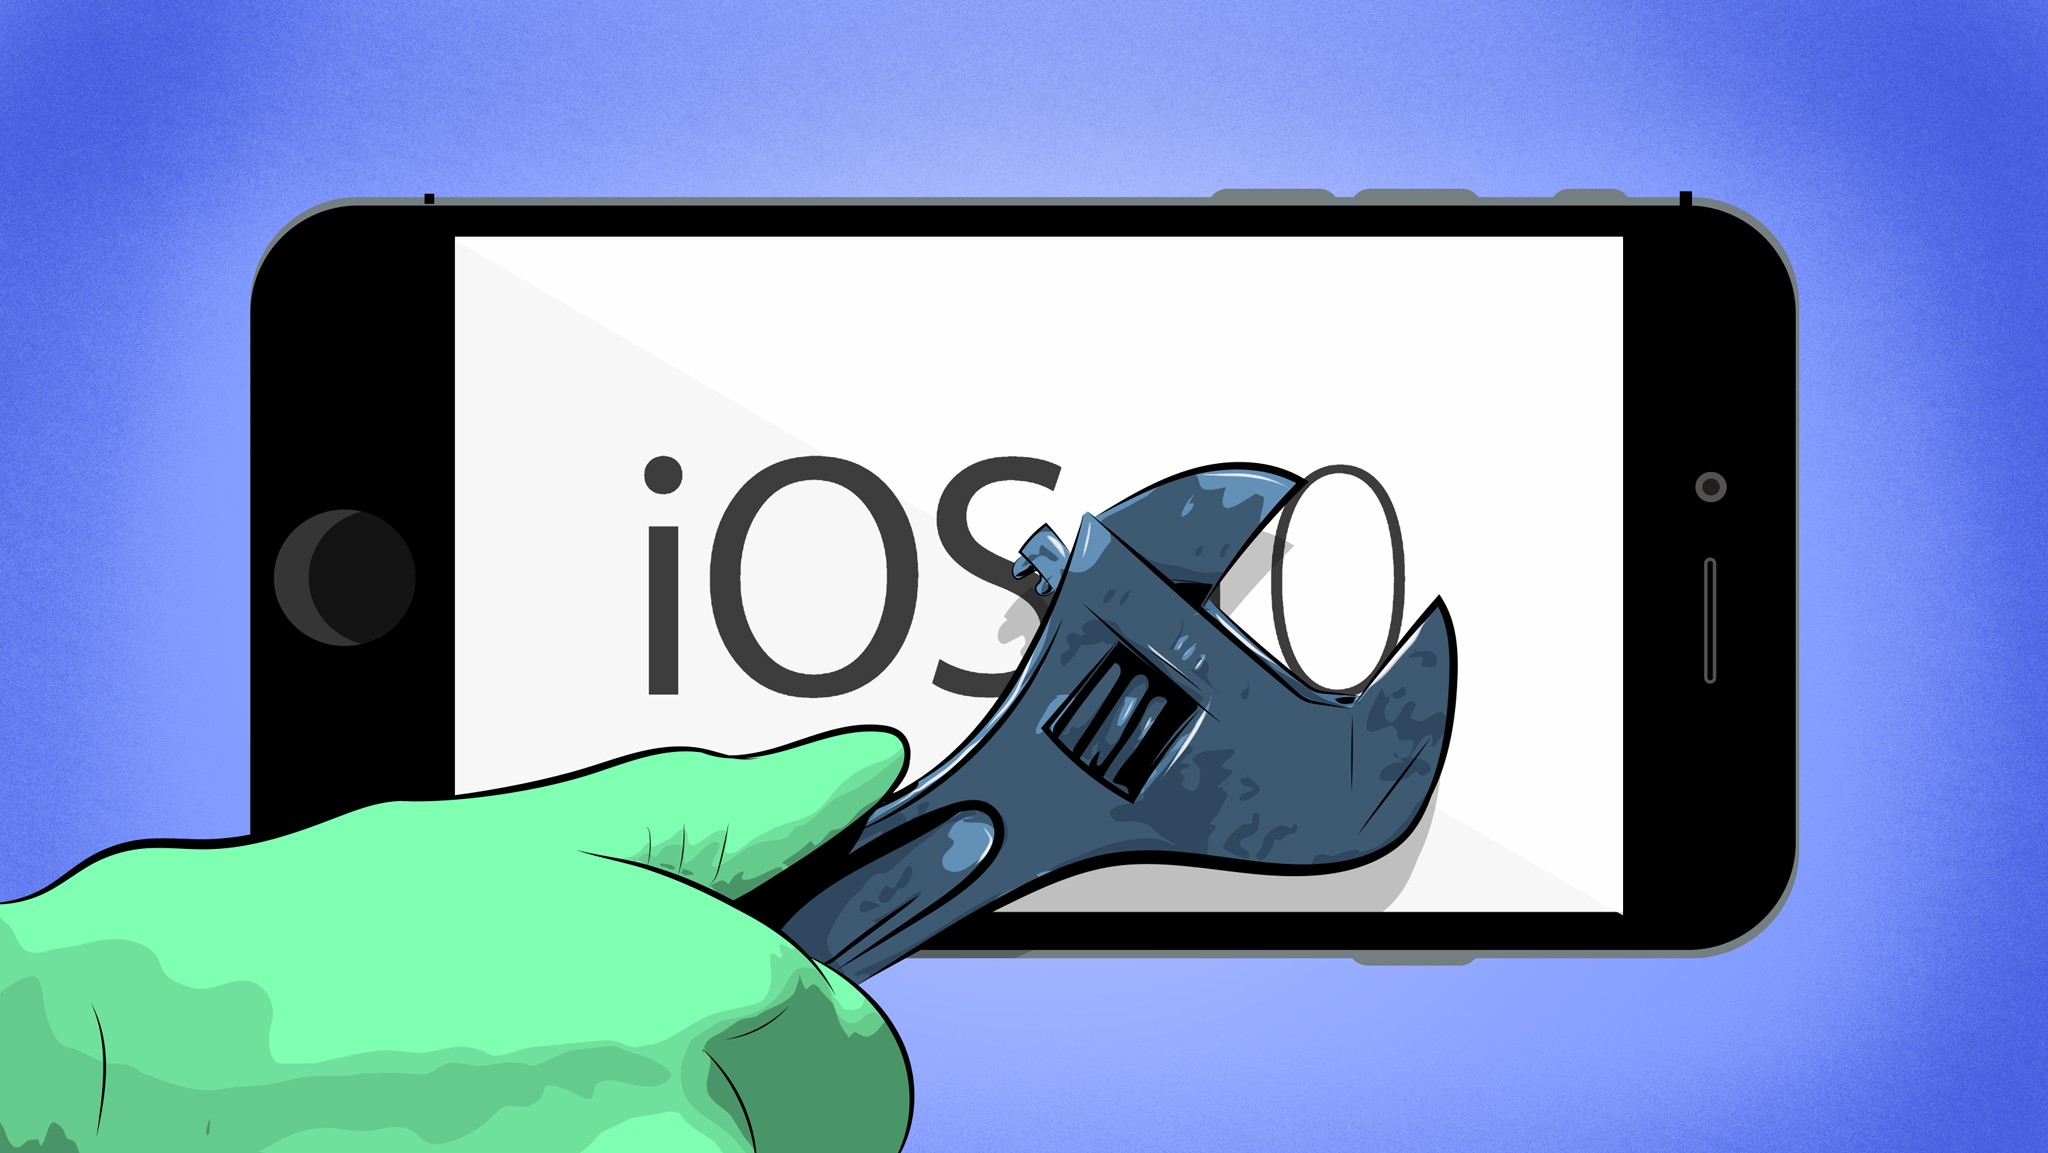 How to fix ios 10s biggest annoyances lifehacker australia with every launch of a new operating system comes a handful of quirks and annoyances ios 10 is no different but thankfully most of those quirks are buycottarizona